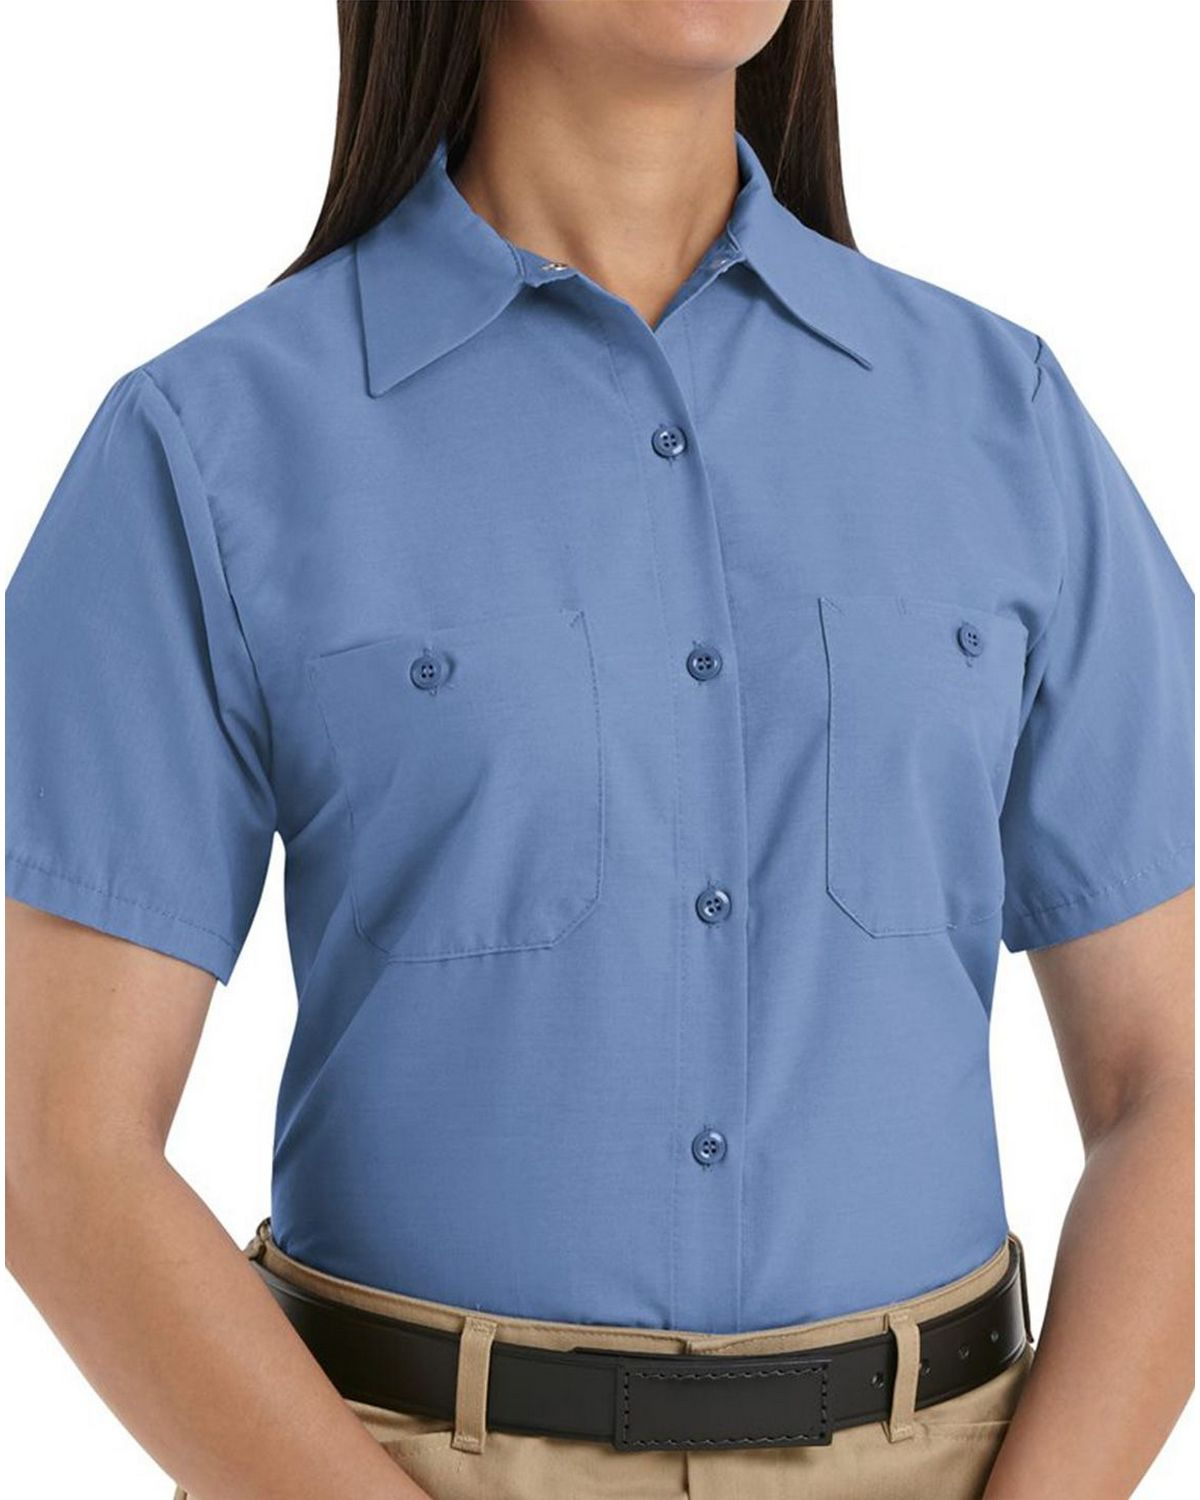 53982fe1 Red Kap SP23 Womens Industrial Work Shirt - Free Shipping Available